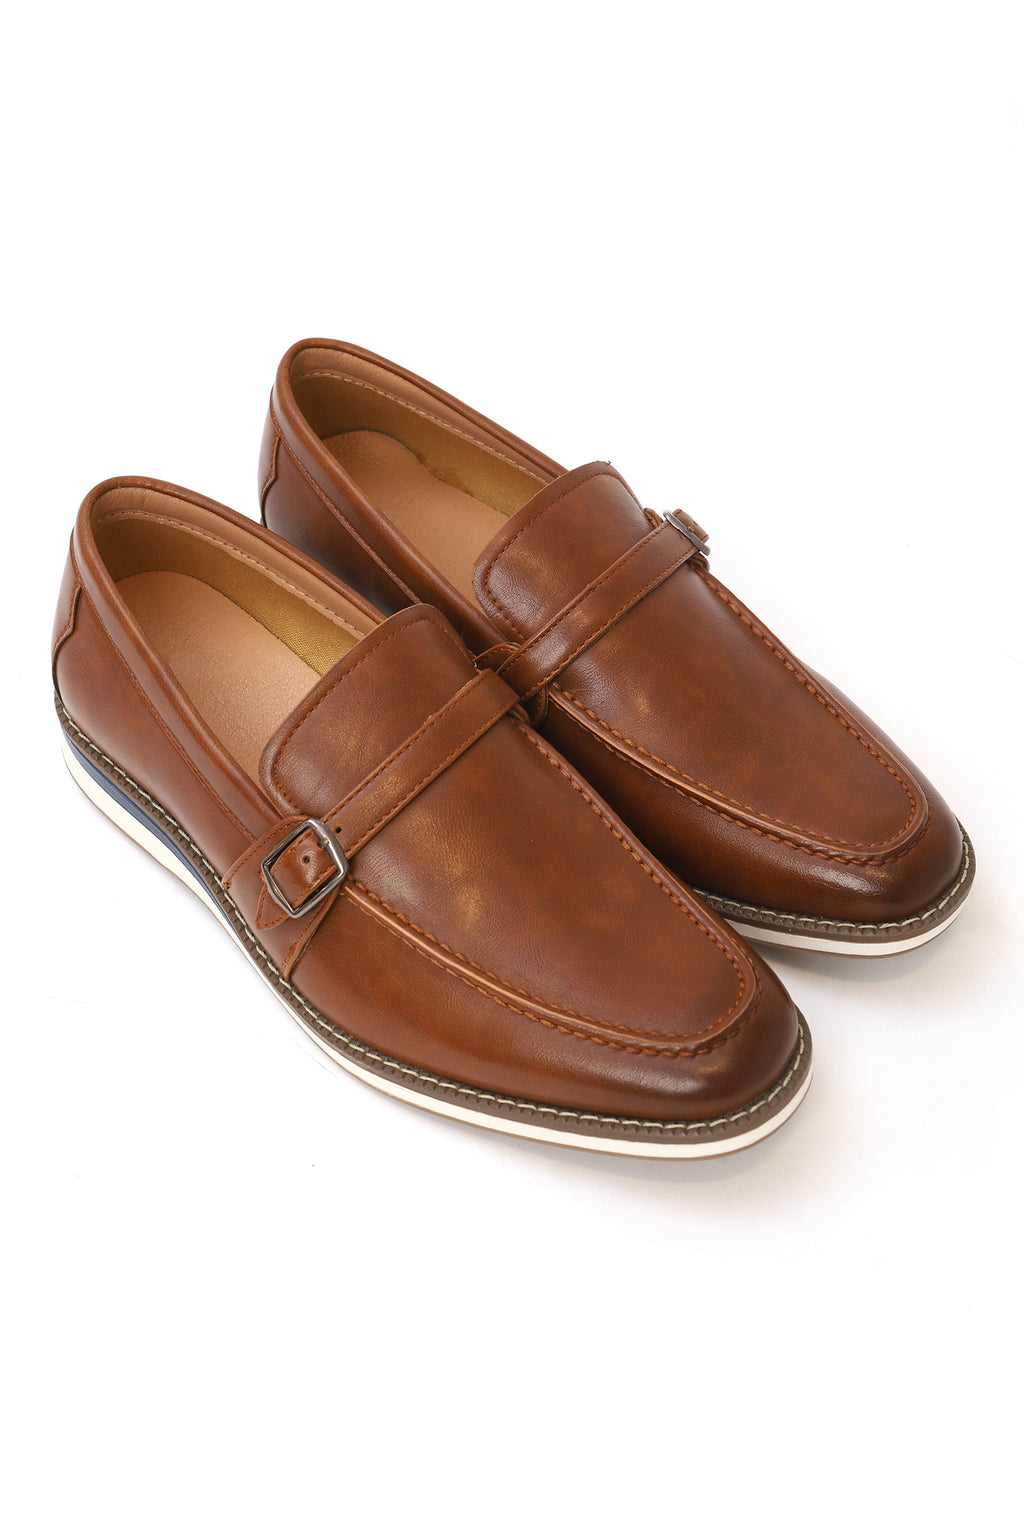 BUCKLED SLIP ONS-BROWN